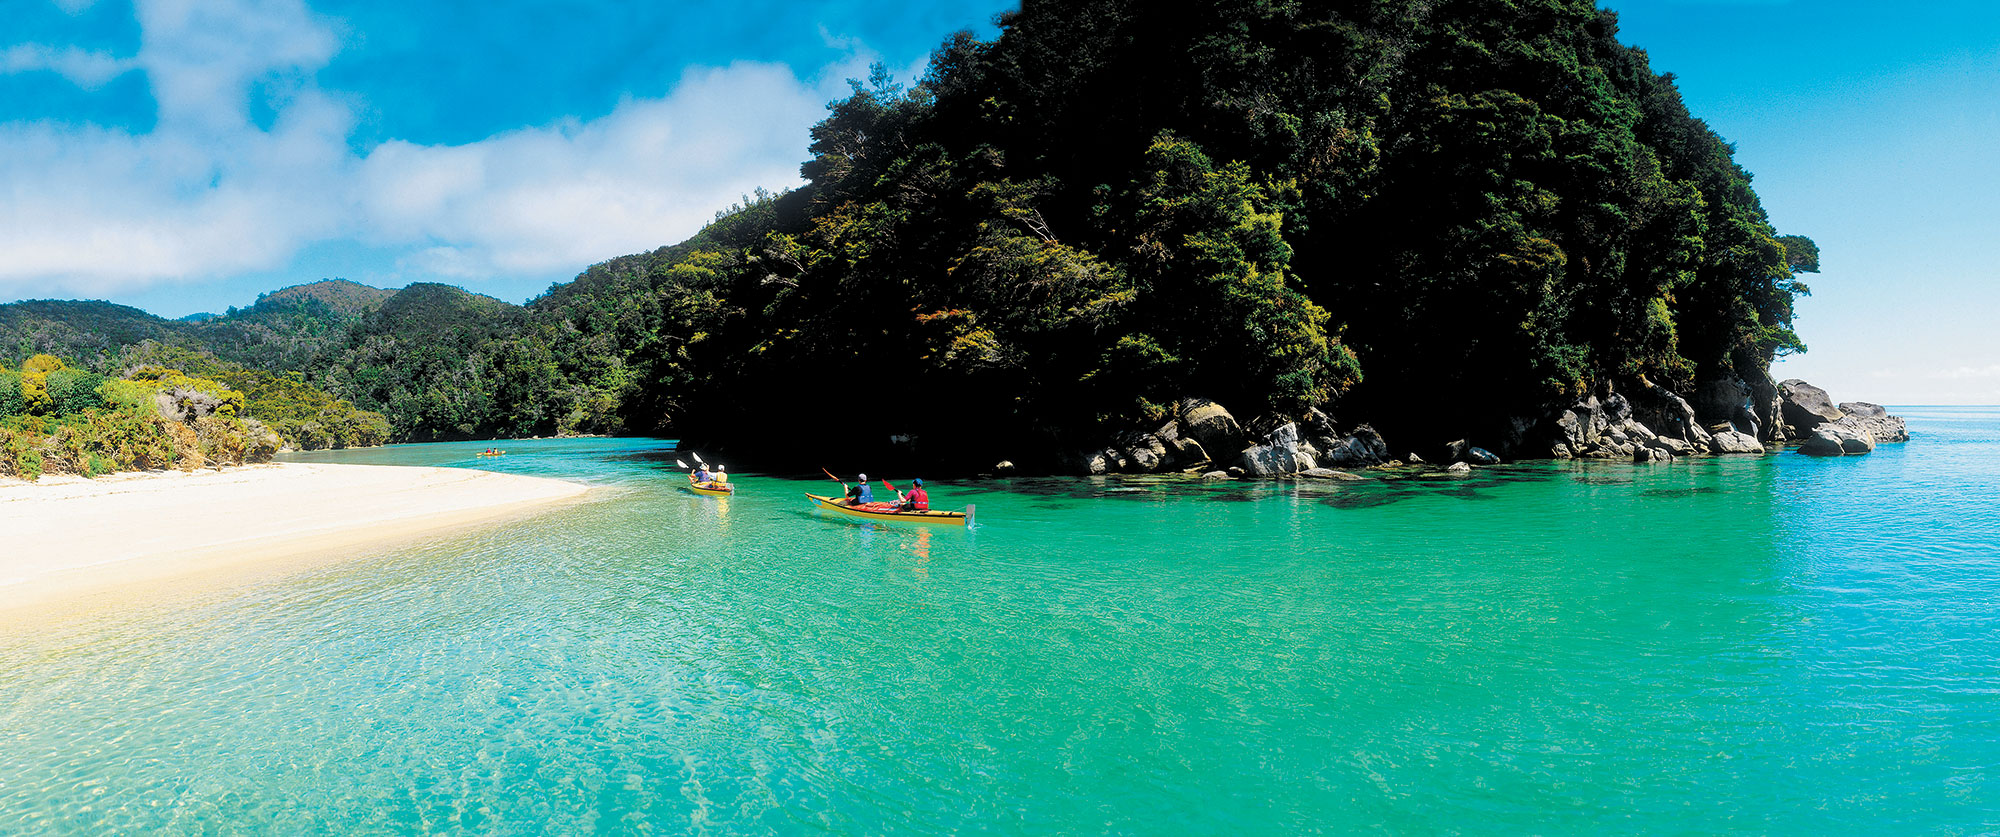 New Zealand Honeymoon Adventure - Sea kayaking Abel Tasman